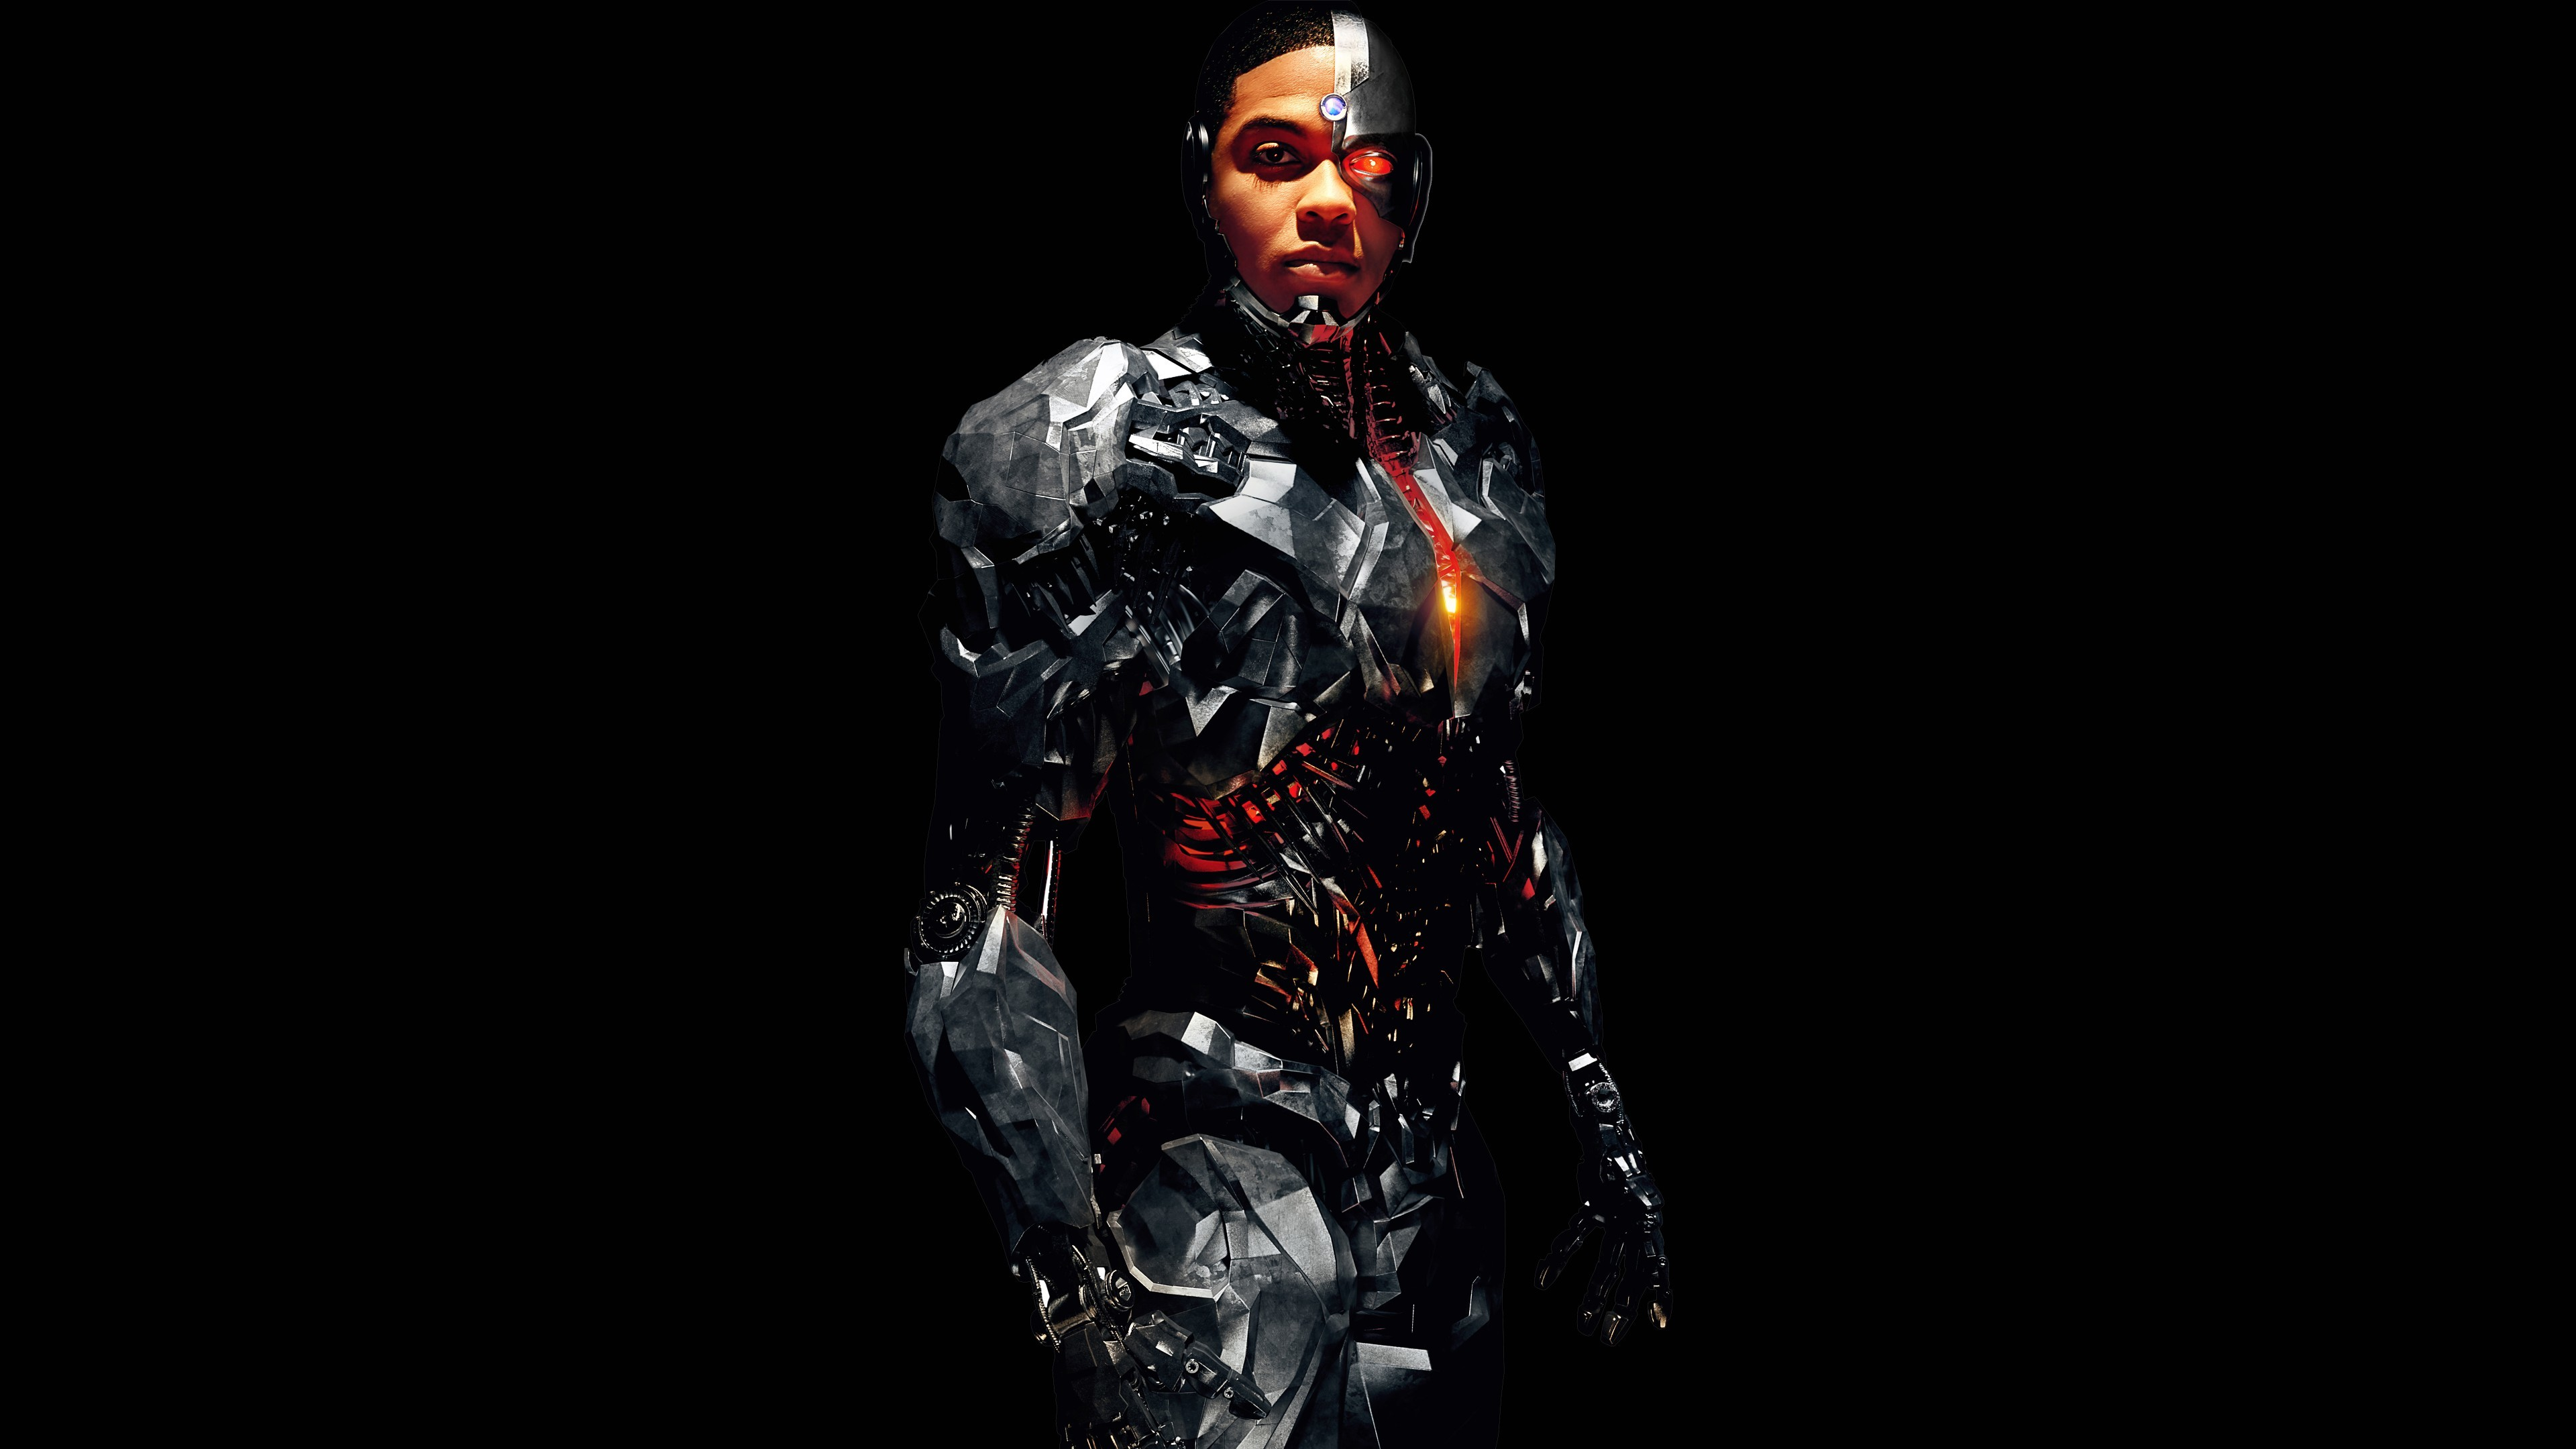 3840x2160 Tags: Cyborg, Ray Fisher, Justice League ...